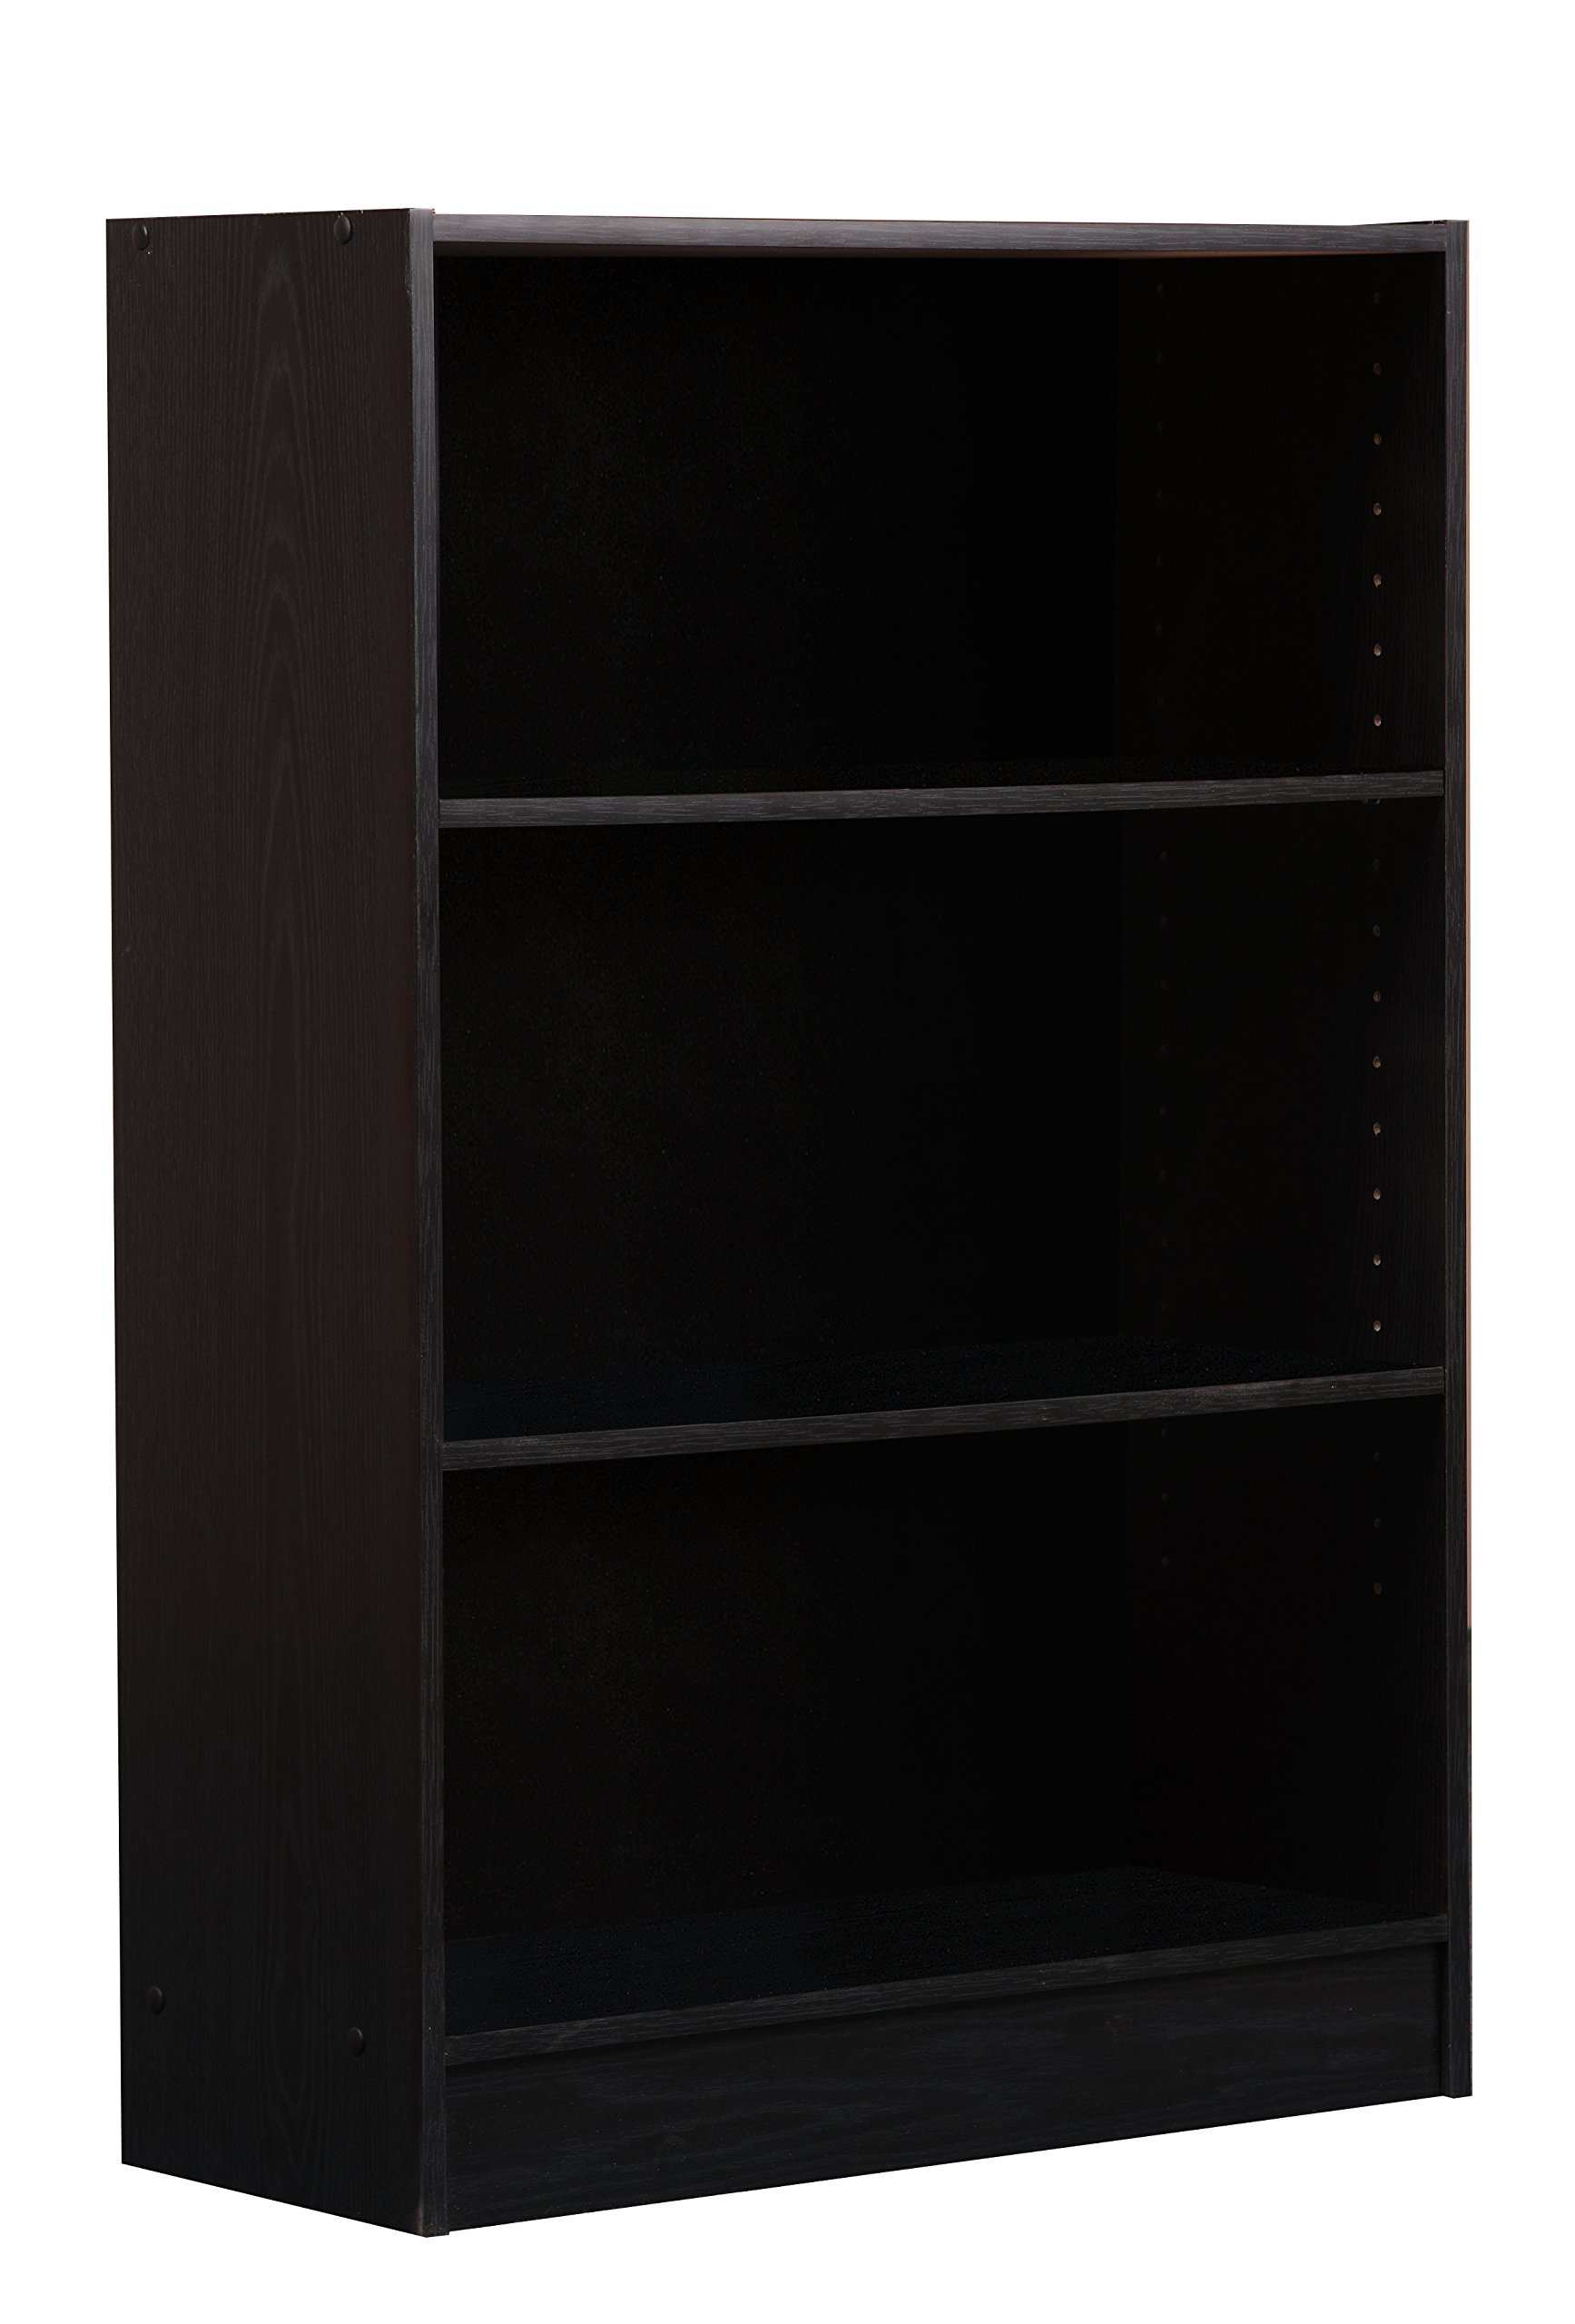 Mylex Three Shelf Bookcase; Two Adjustable Shelves; 9.5 x 24.5 x 35.5 Inches, Black, Assembly Required (43004)